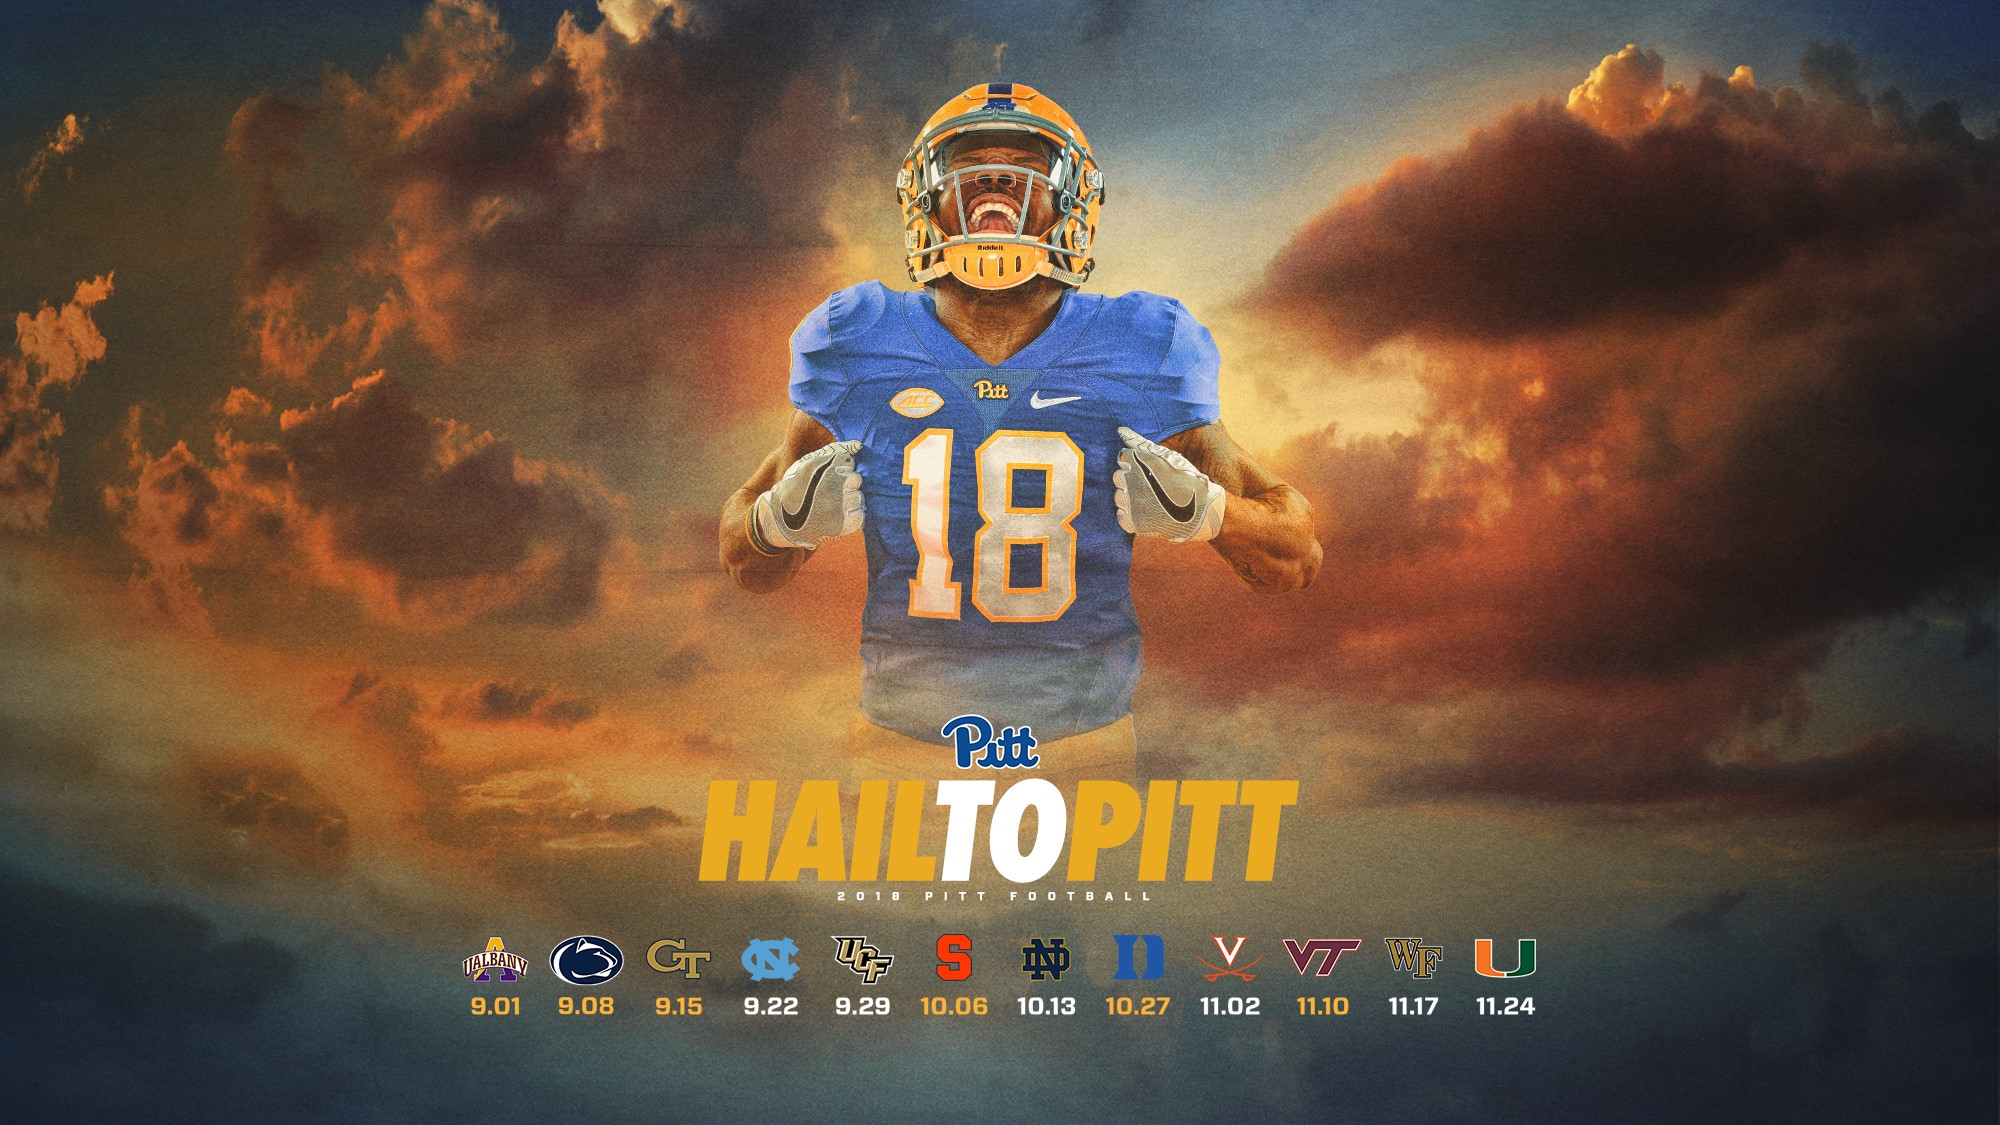 f0fb09fe61e Pitt Announces 2018 Football Schedule - Pitt Panthers  H2P